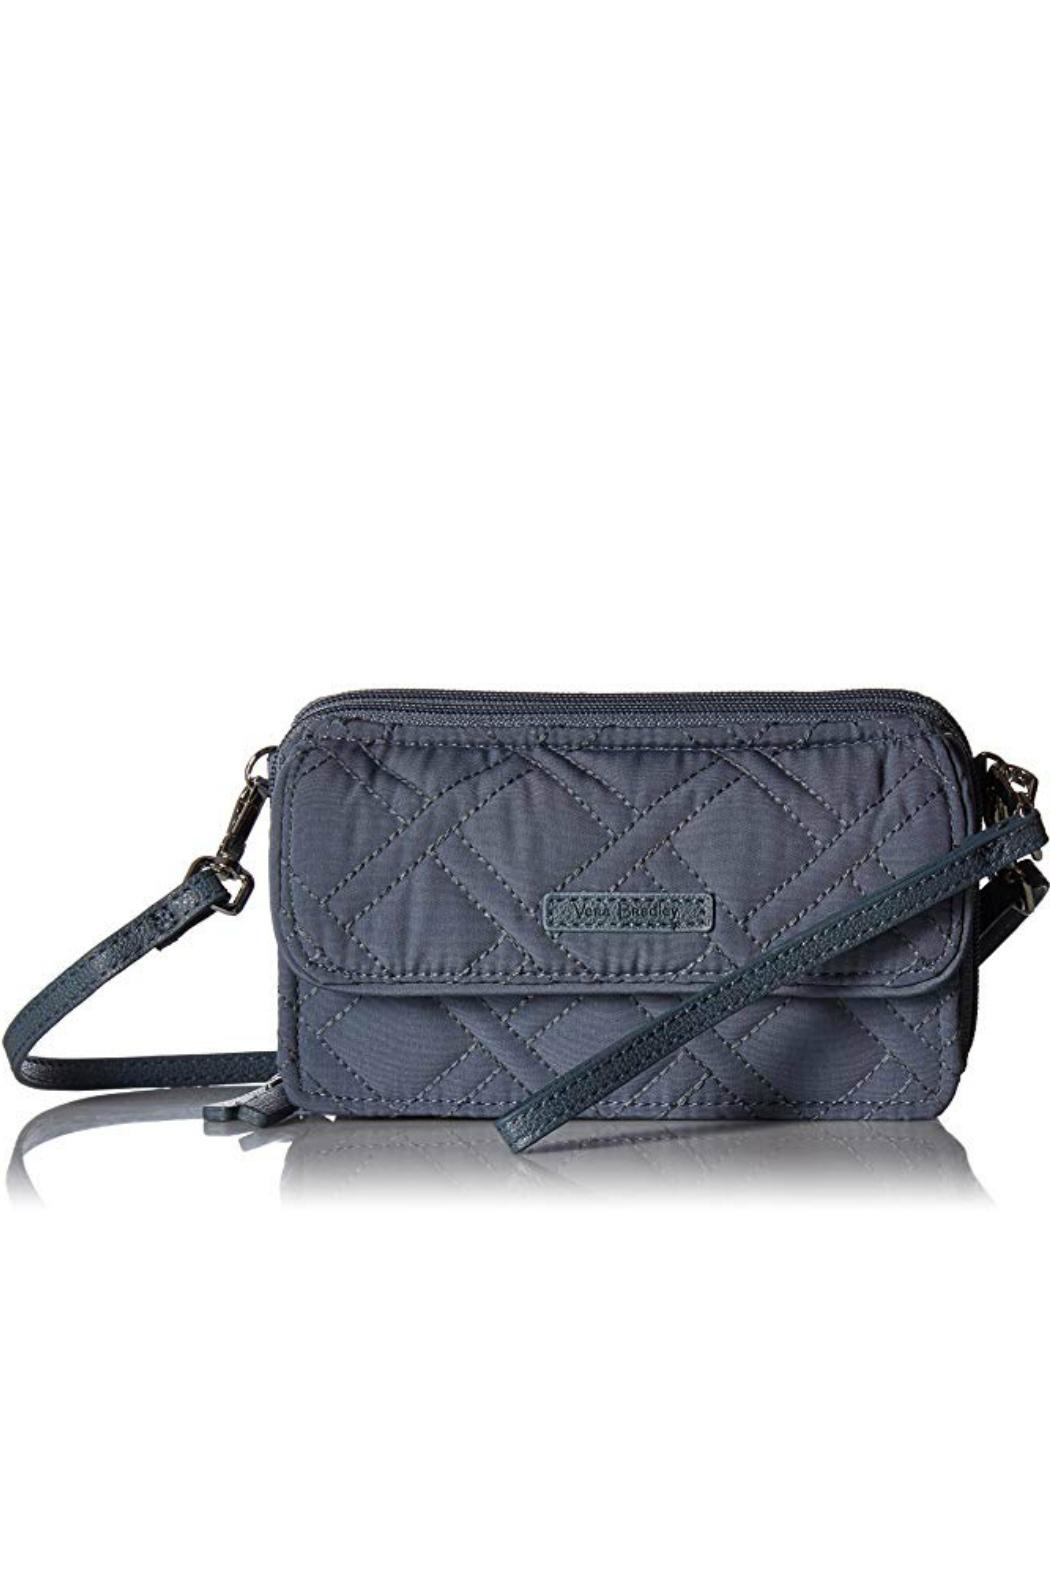 Vera Bradley Charcoal All-In-One Crossbody - Main Image